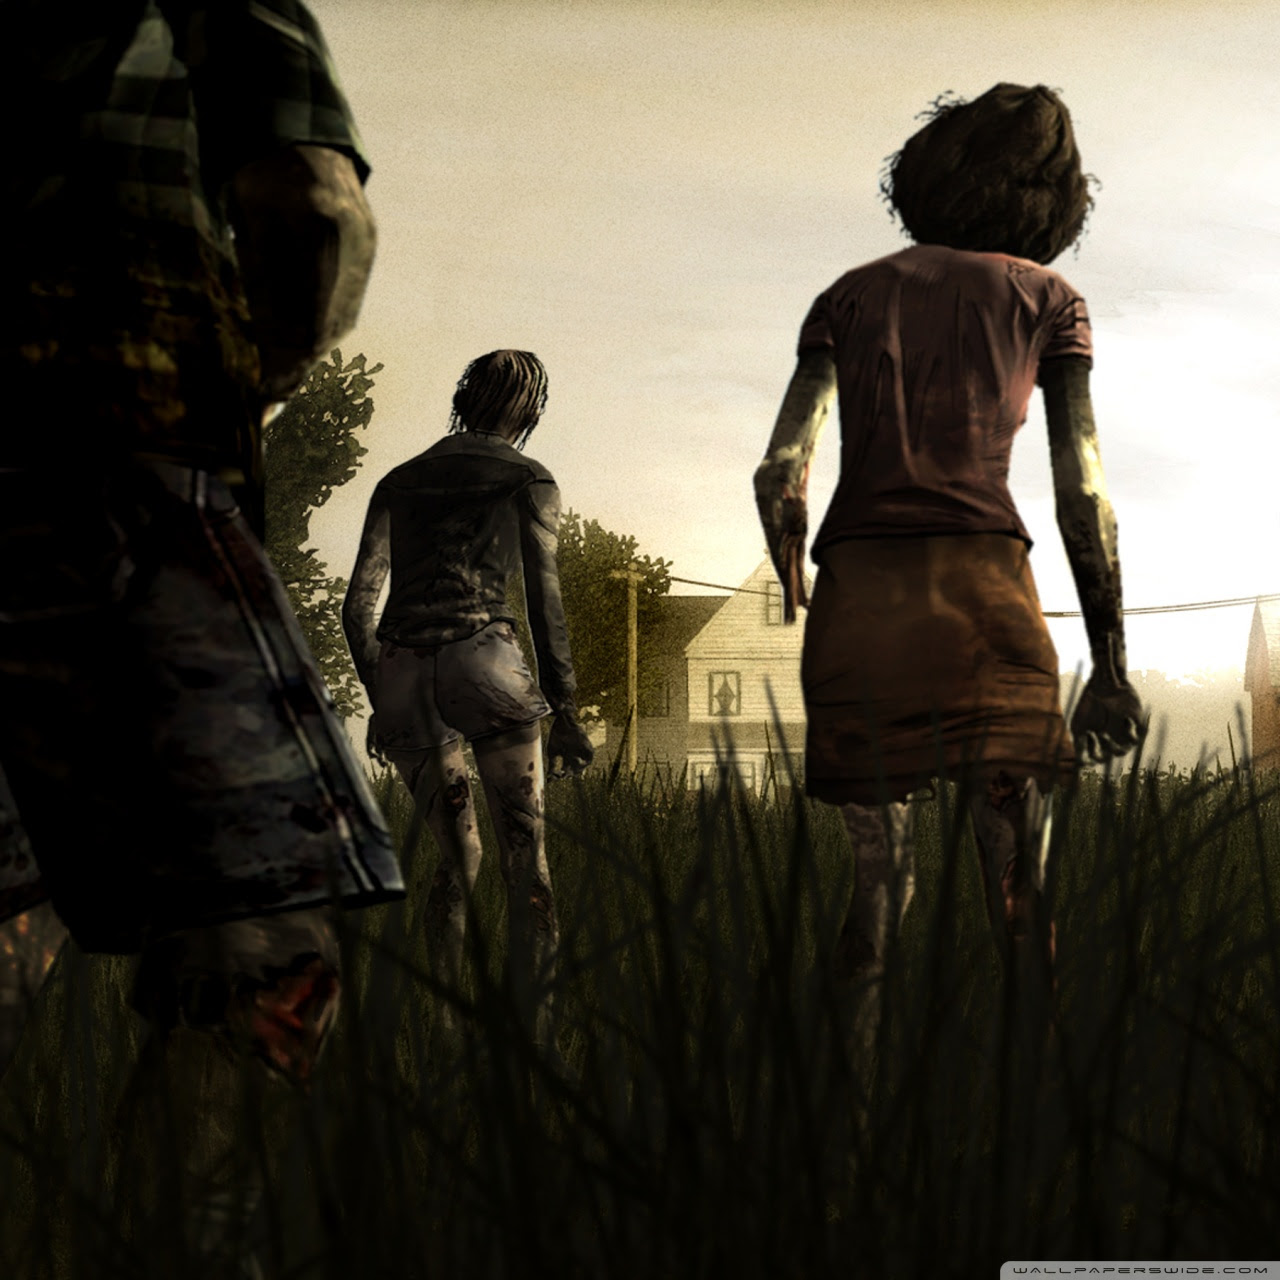 The Walking Dead Ultra Hd Desktop Background Wallpaper For